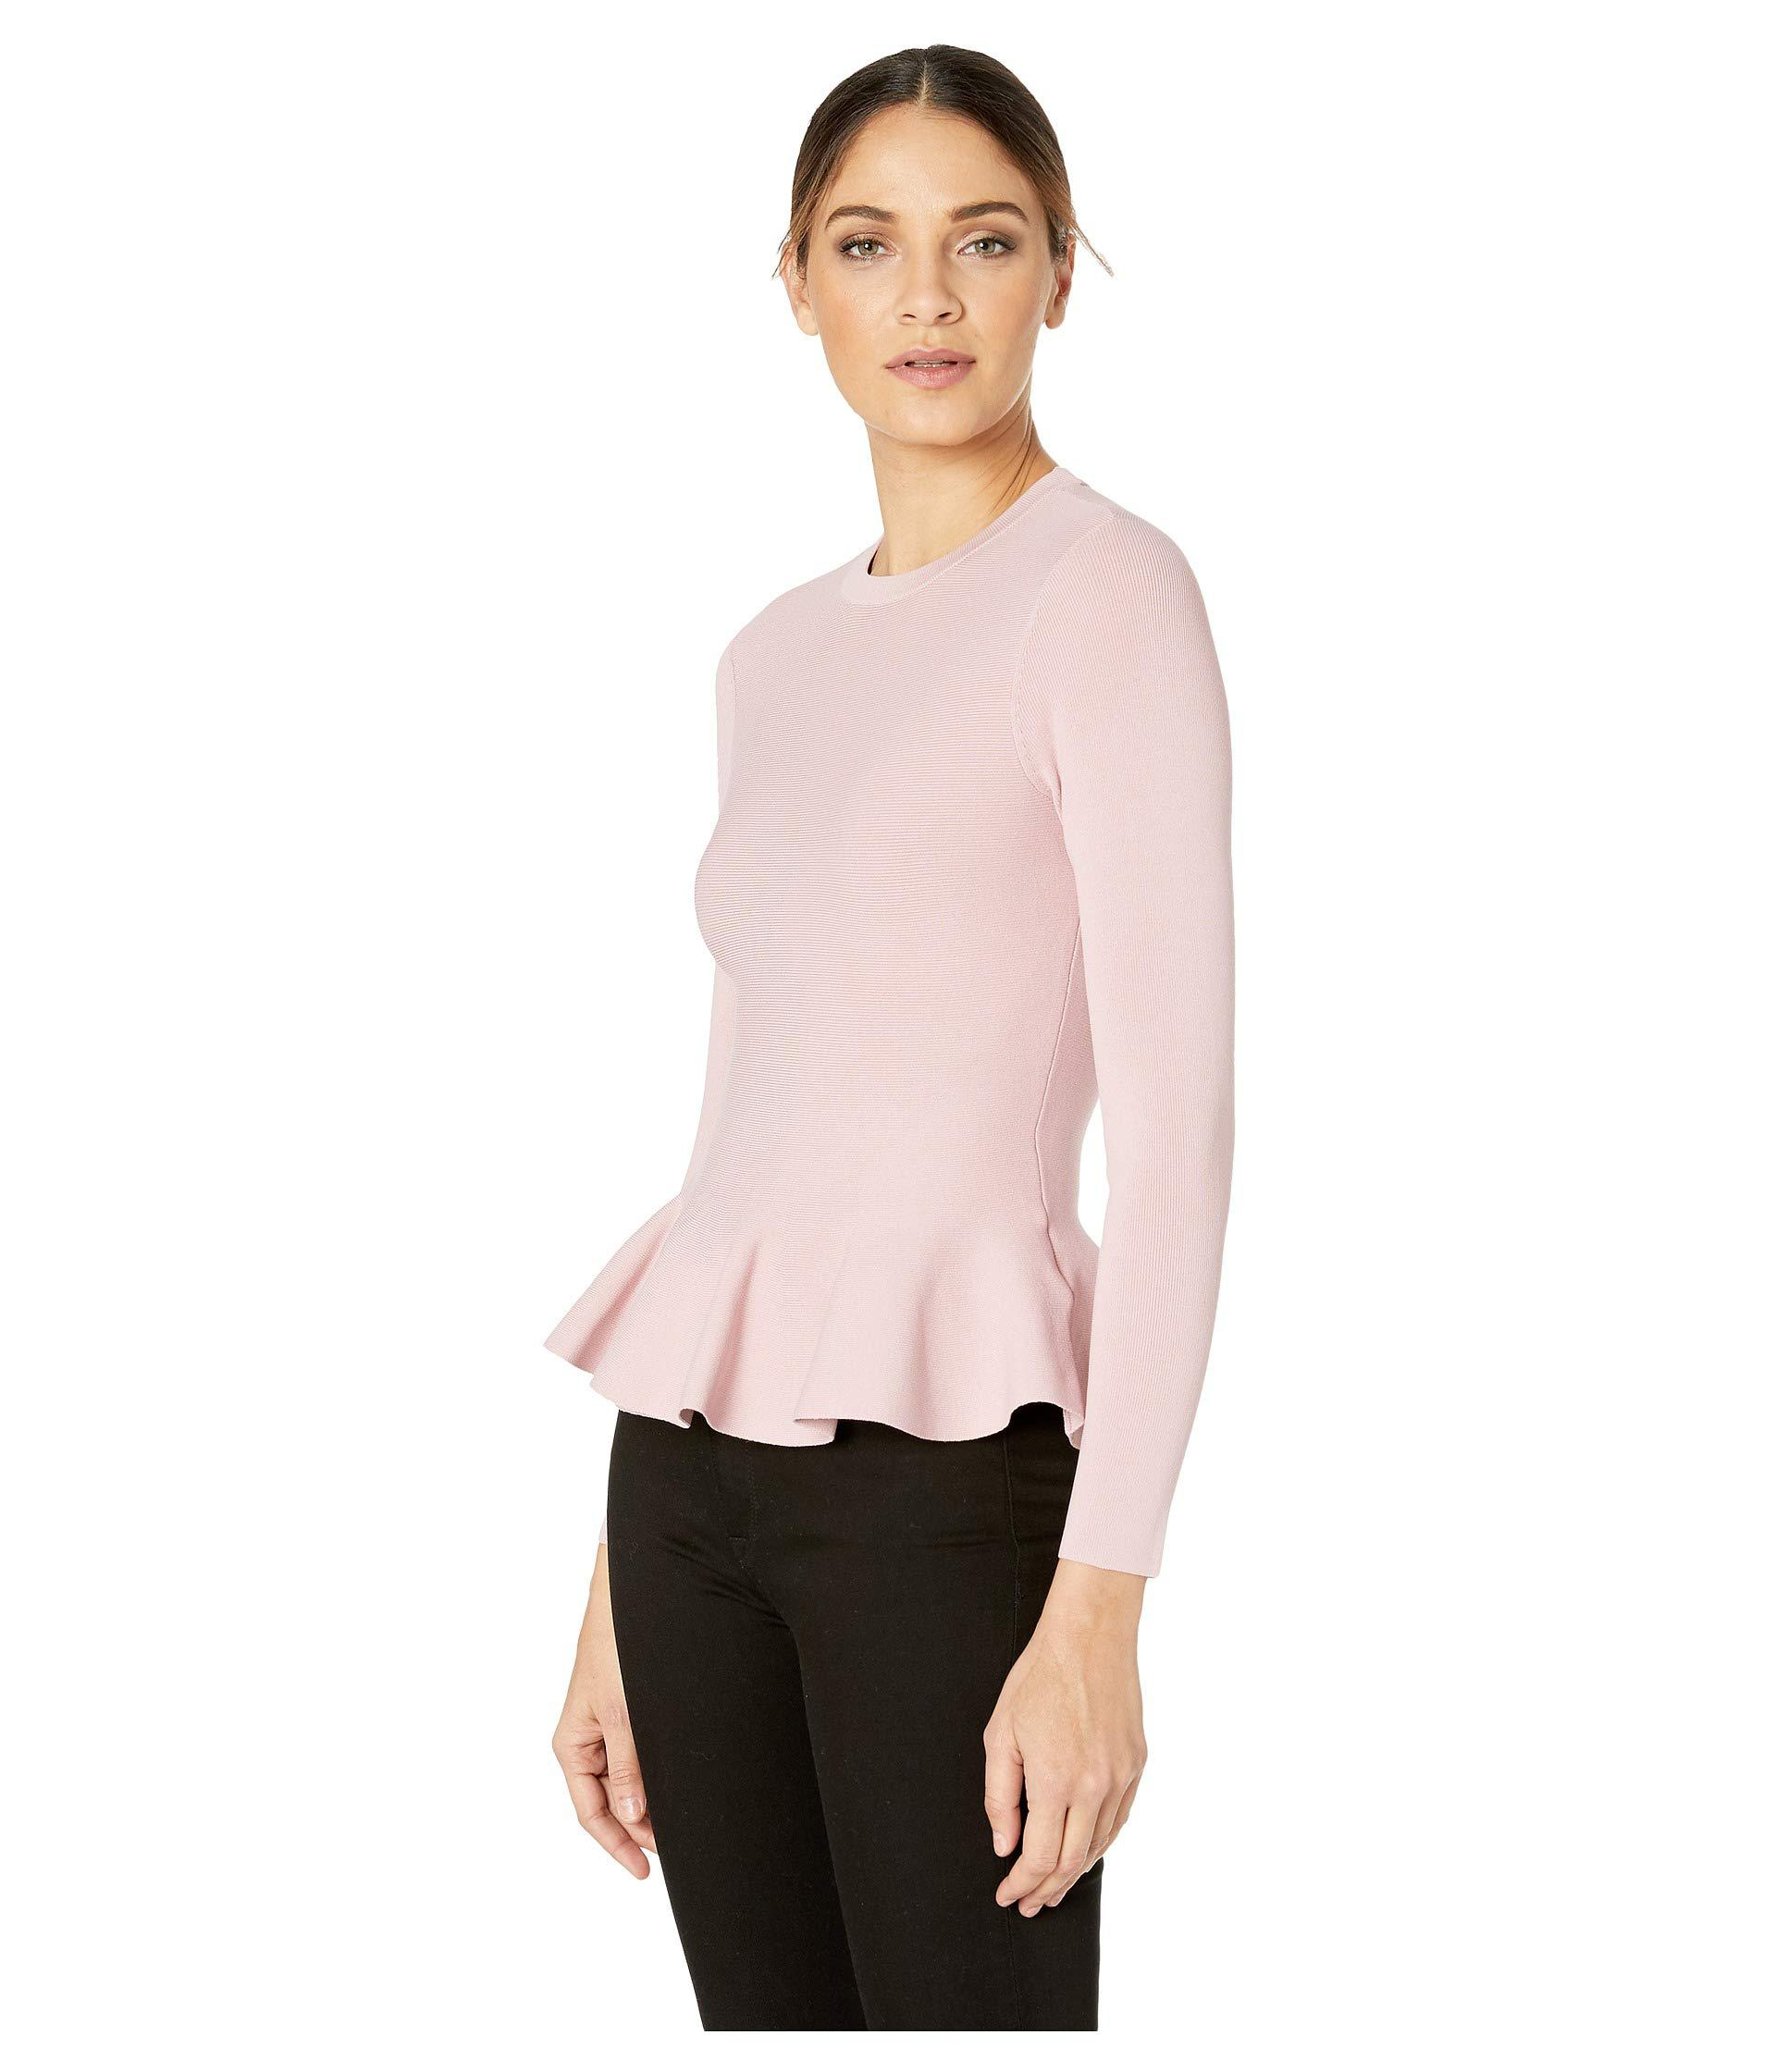 4e4cc46335b75 Lyst - Ted Baker Hinlina Knitted Jumper (dusty Pink) Women s Clothing in  Pink